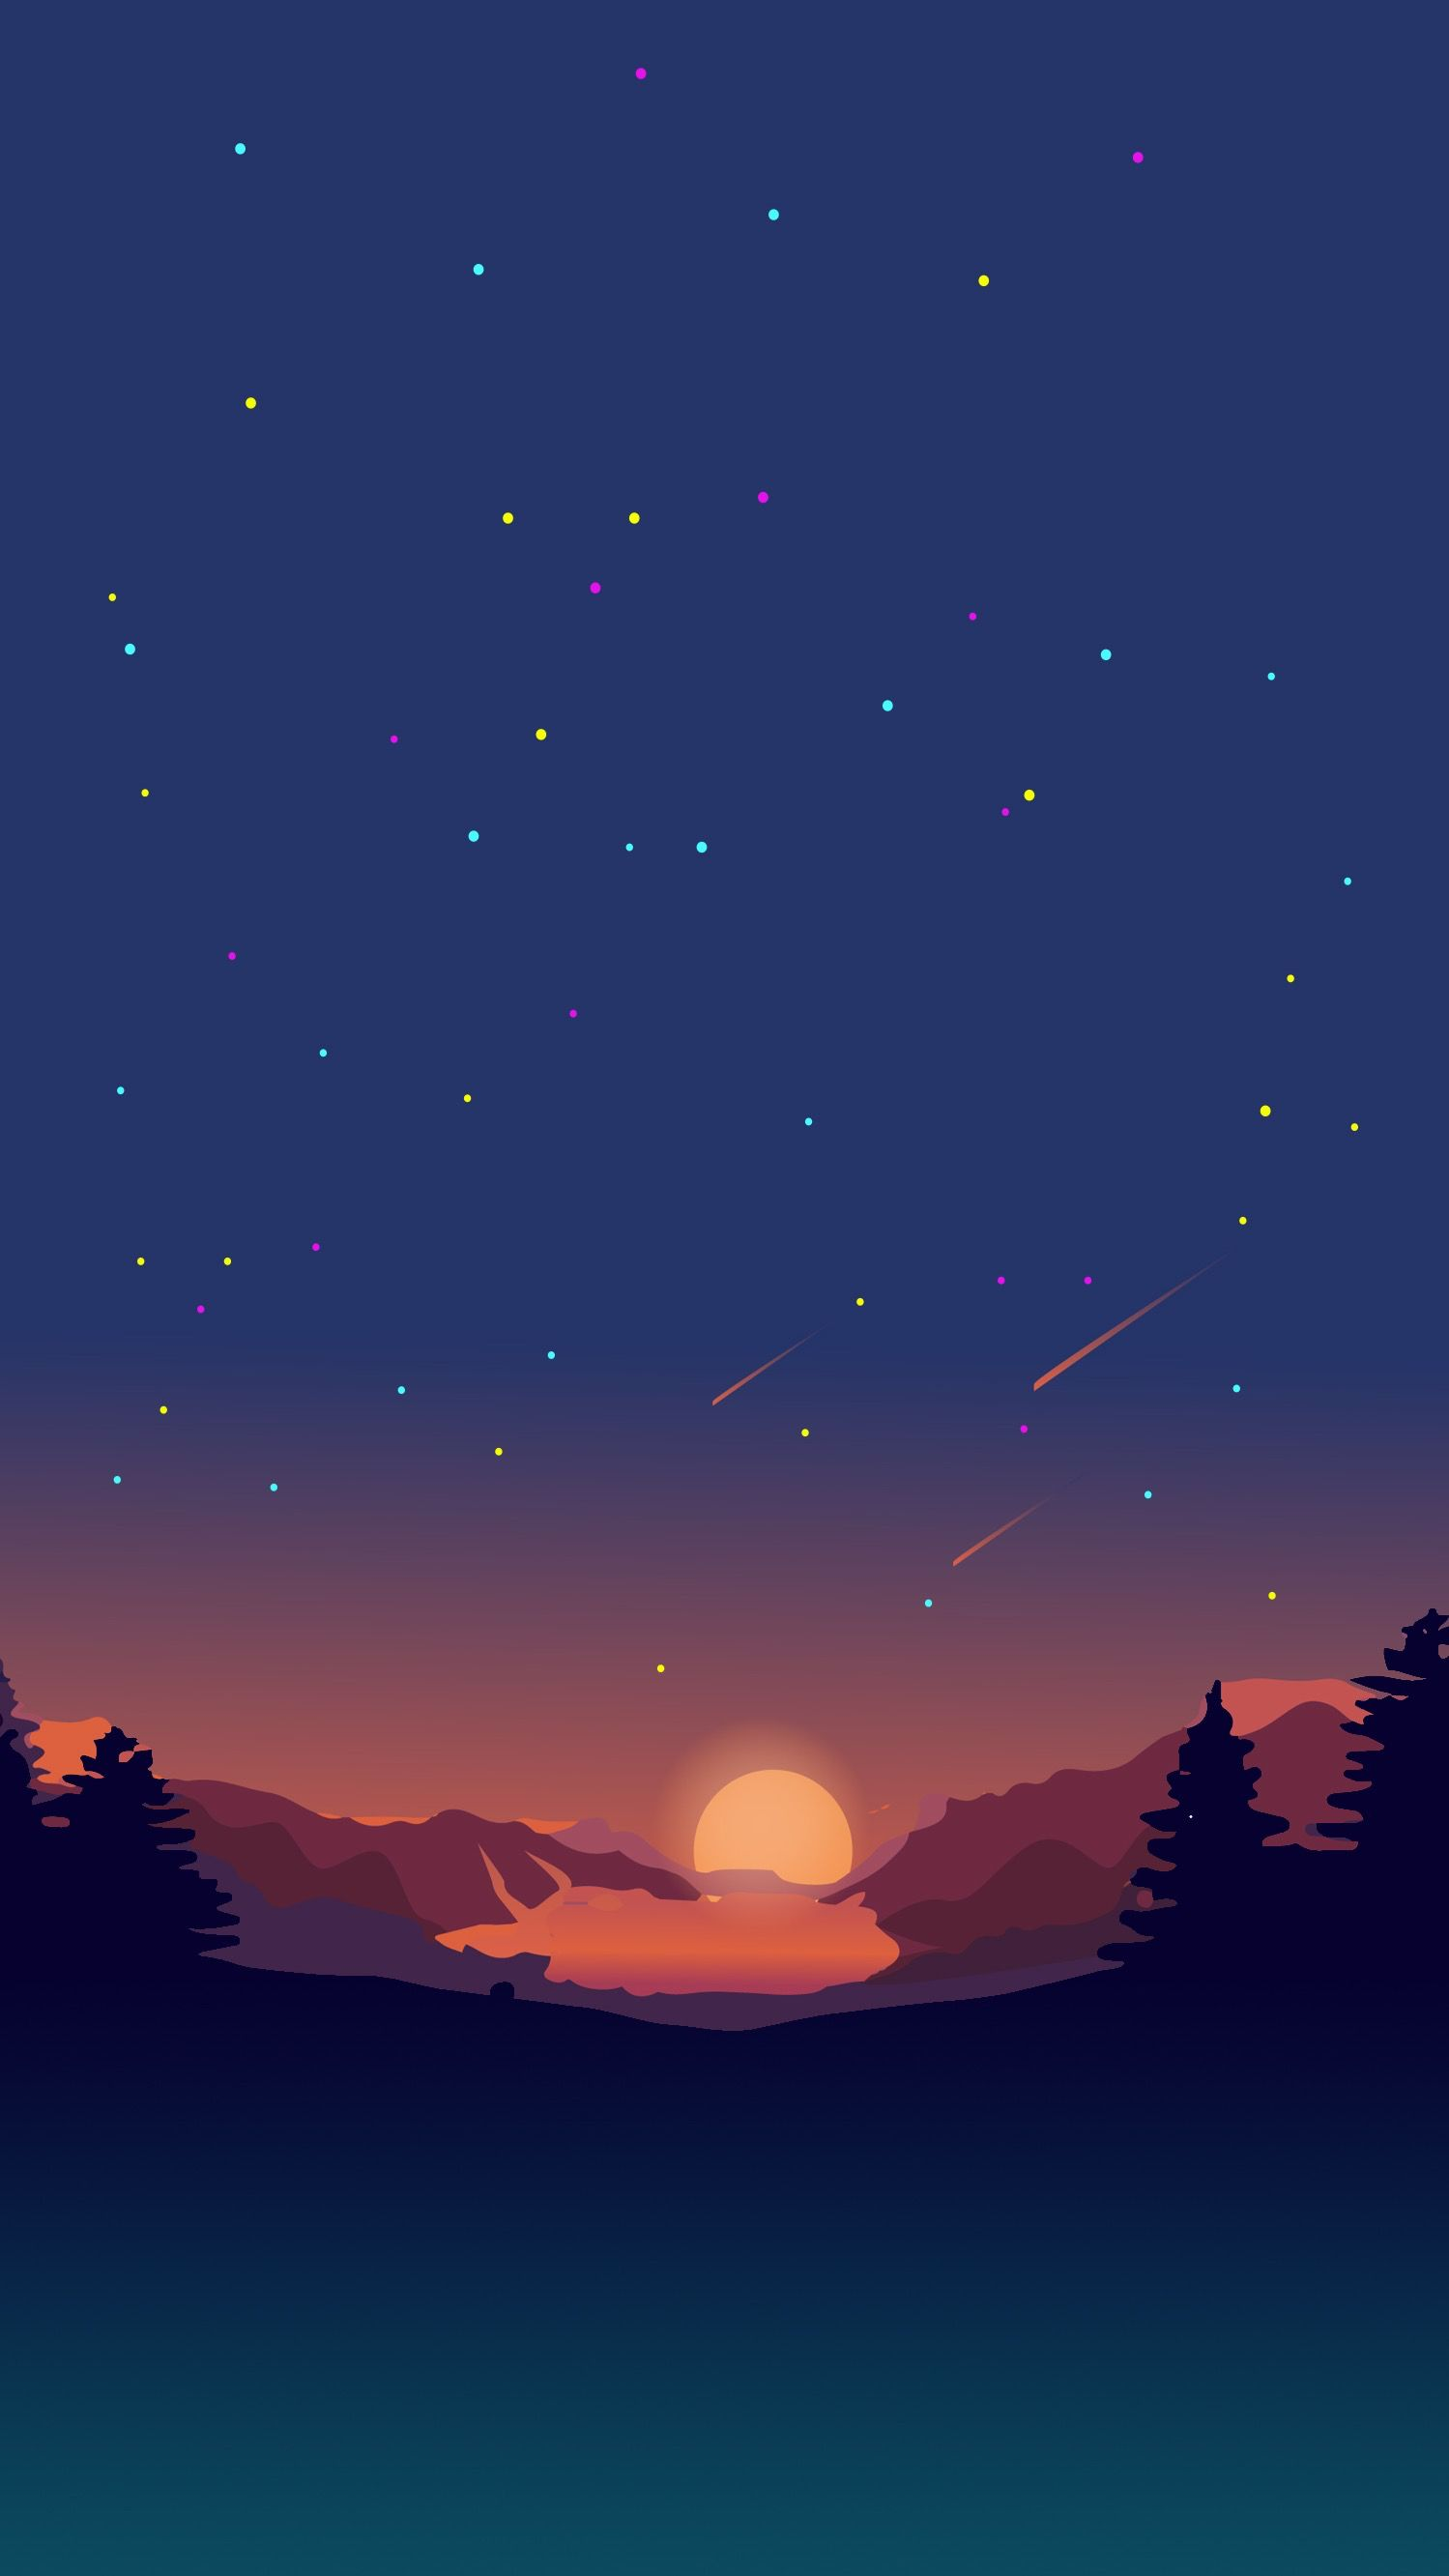 iPhone Wallpapers HD from Uploaded by user,